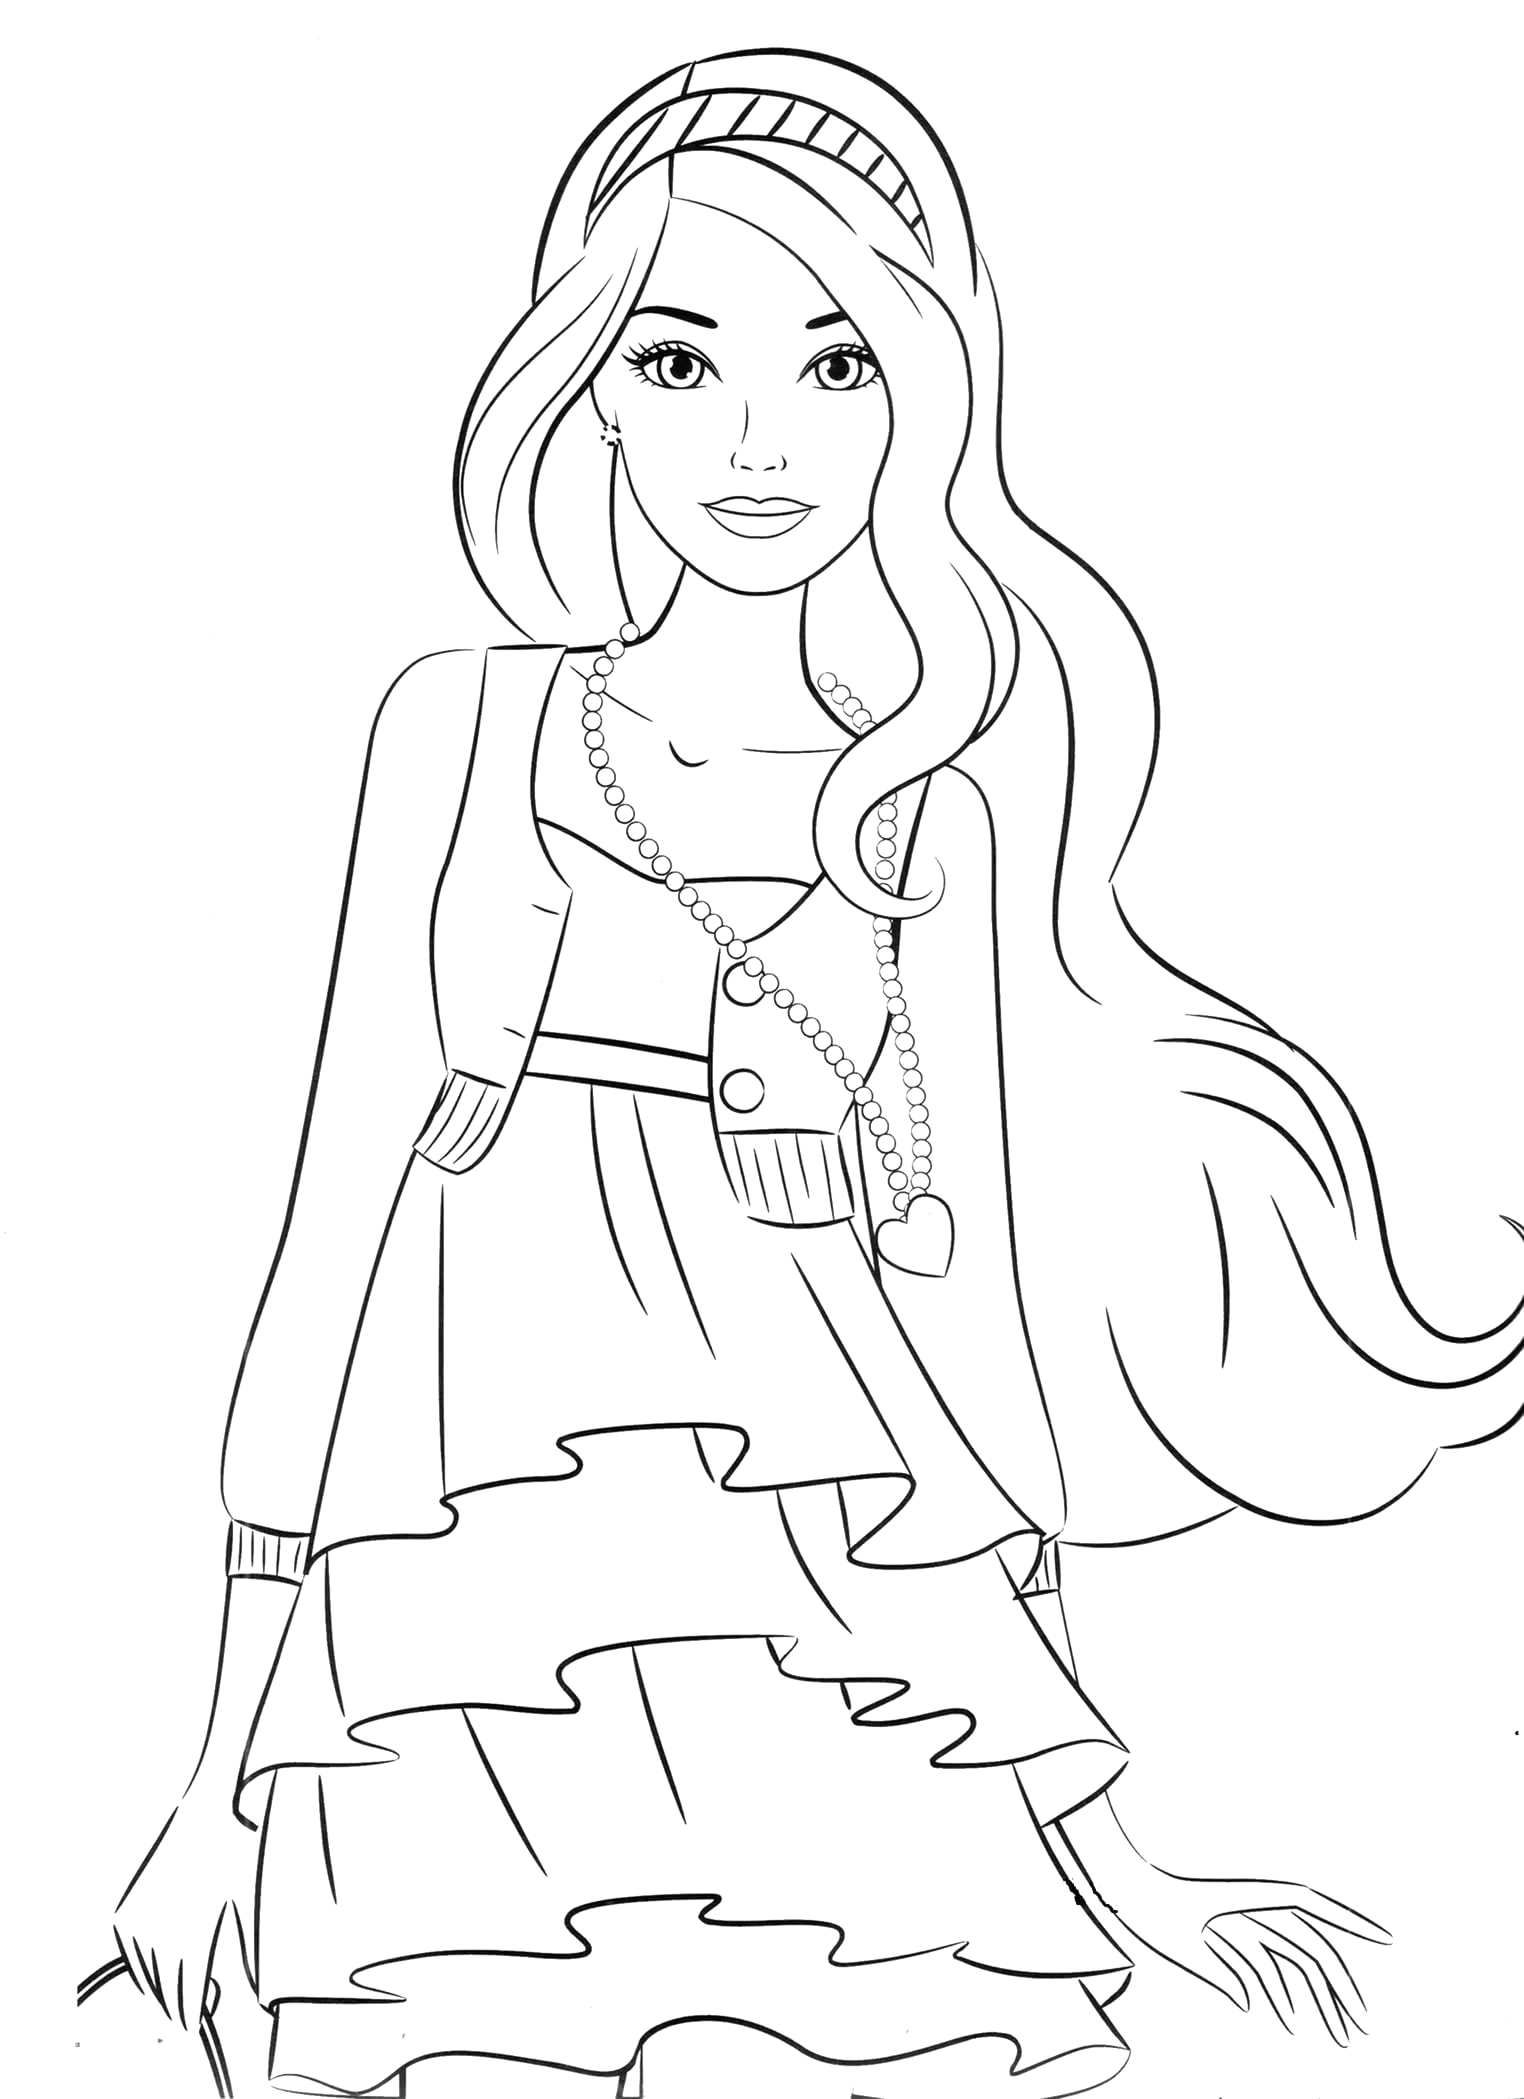 Free Printable Coloring Pages for 4 Year Olds Coloring Pages for 4 Year Olds at Getcolorings